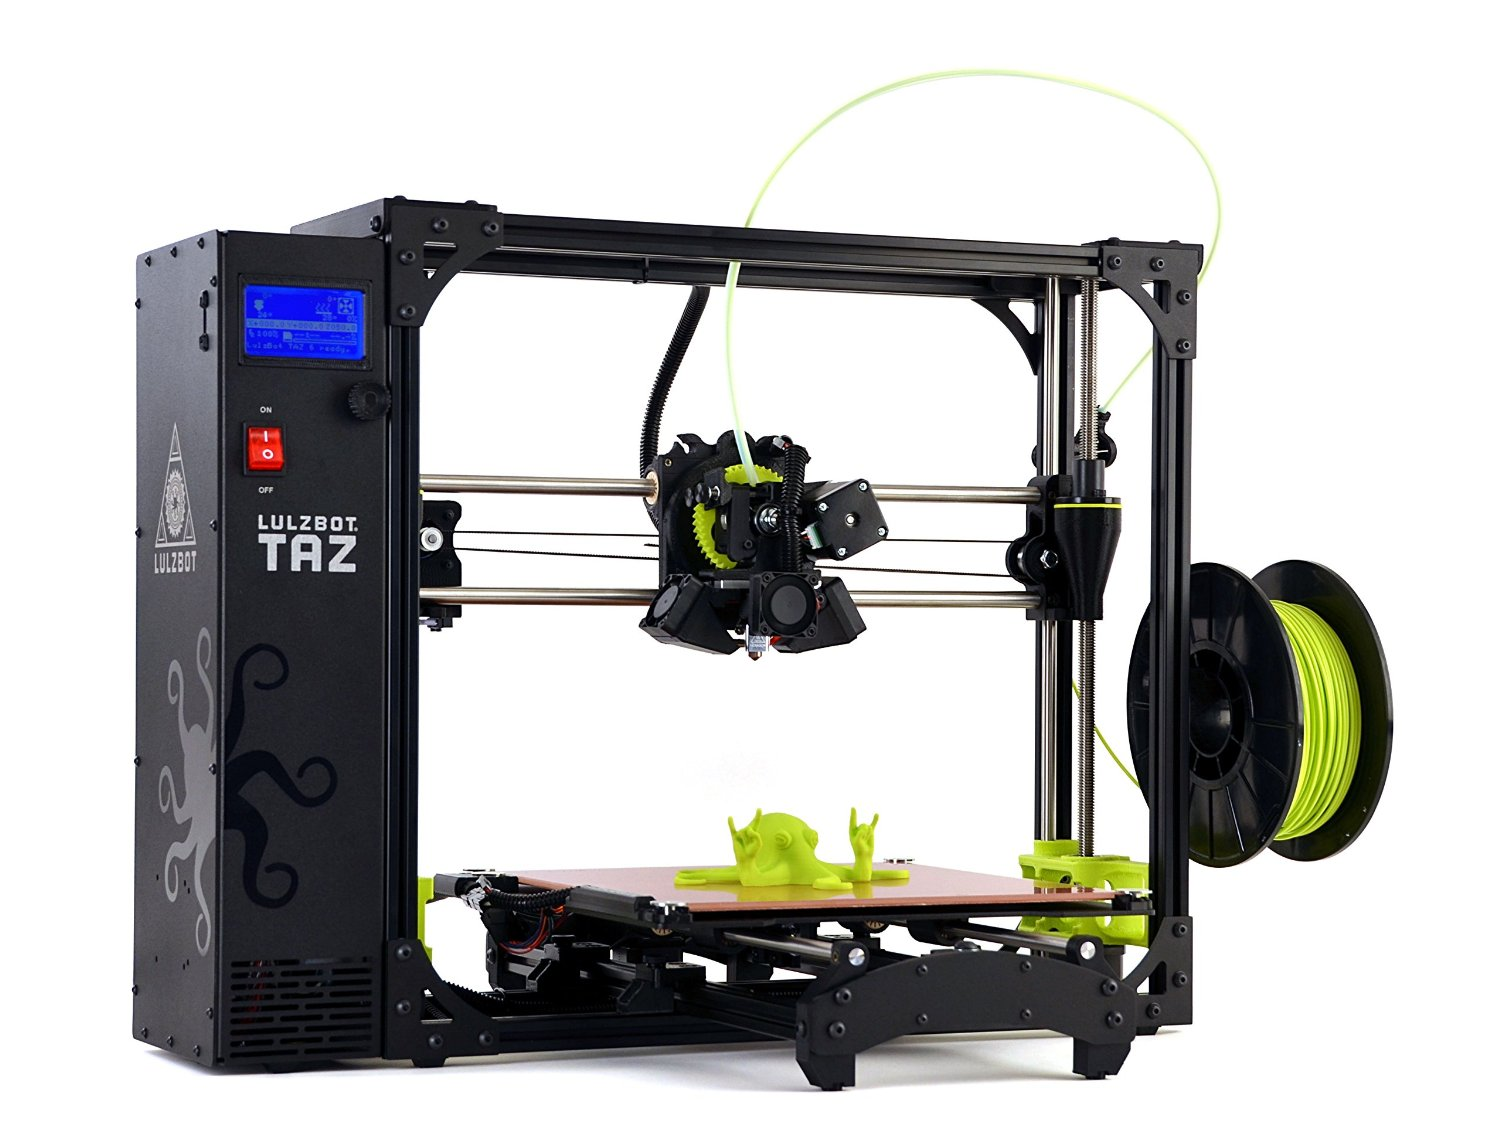 How To Choose Between Cartesian And Delta 3d Printers